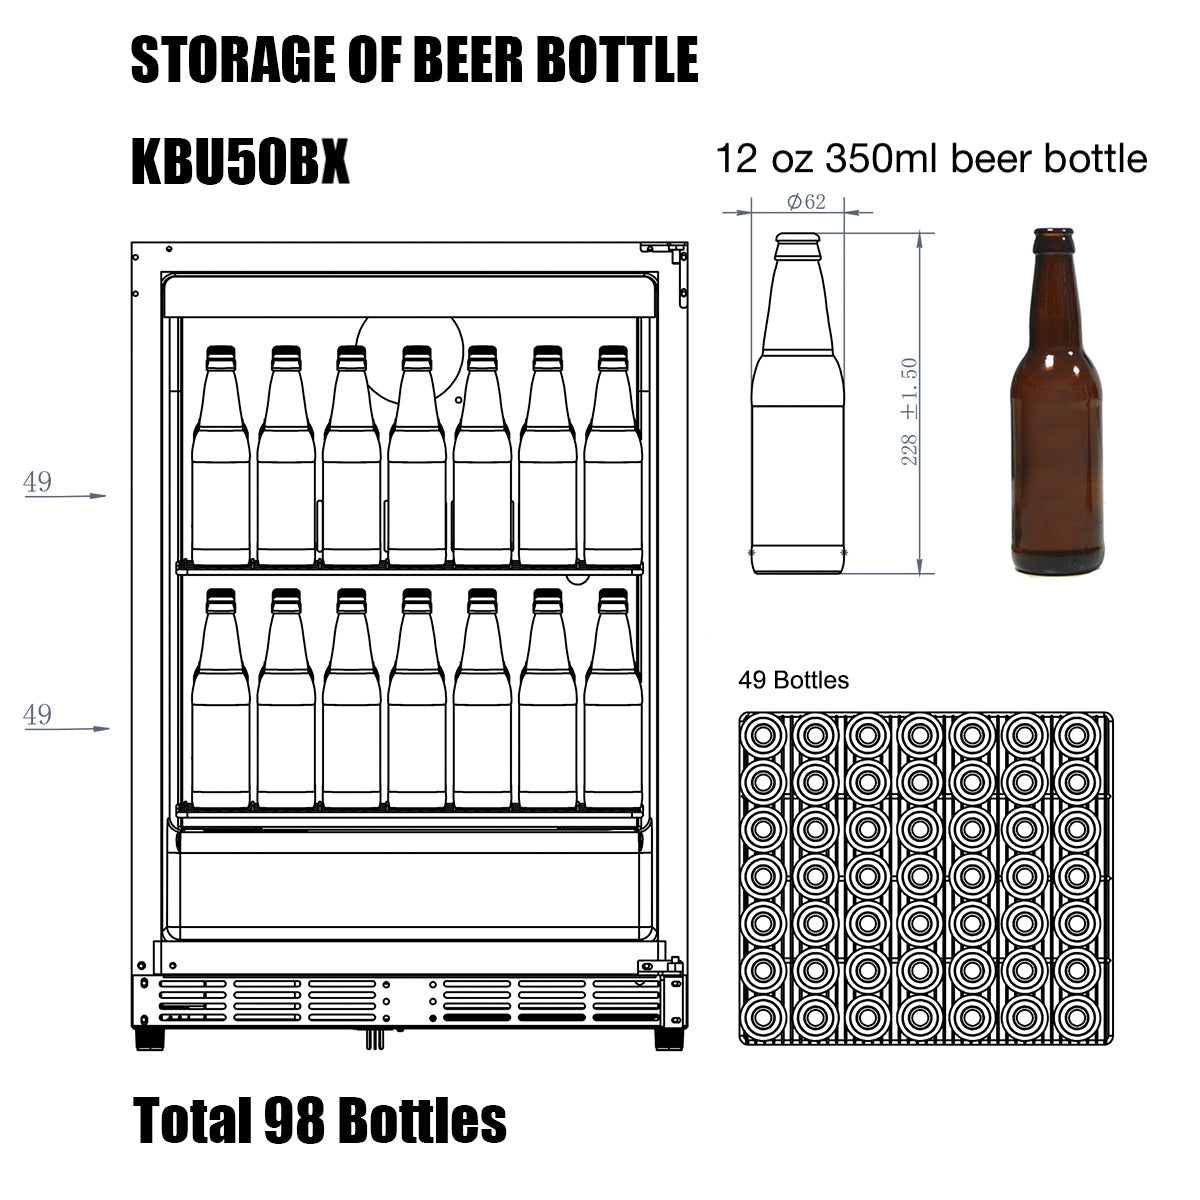 KBU50B Storage of Beer Bottle